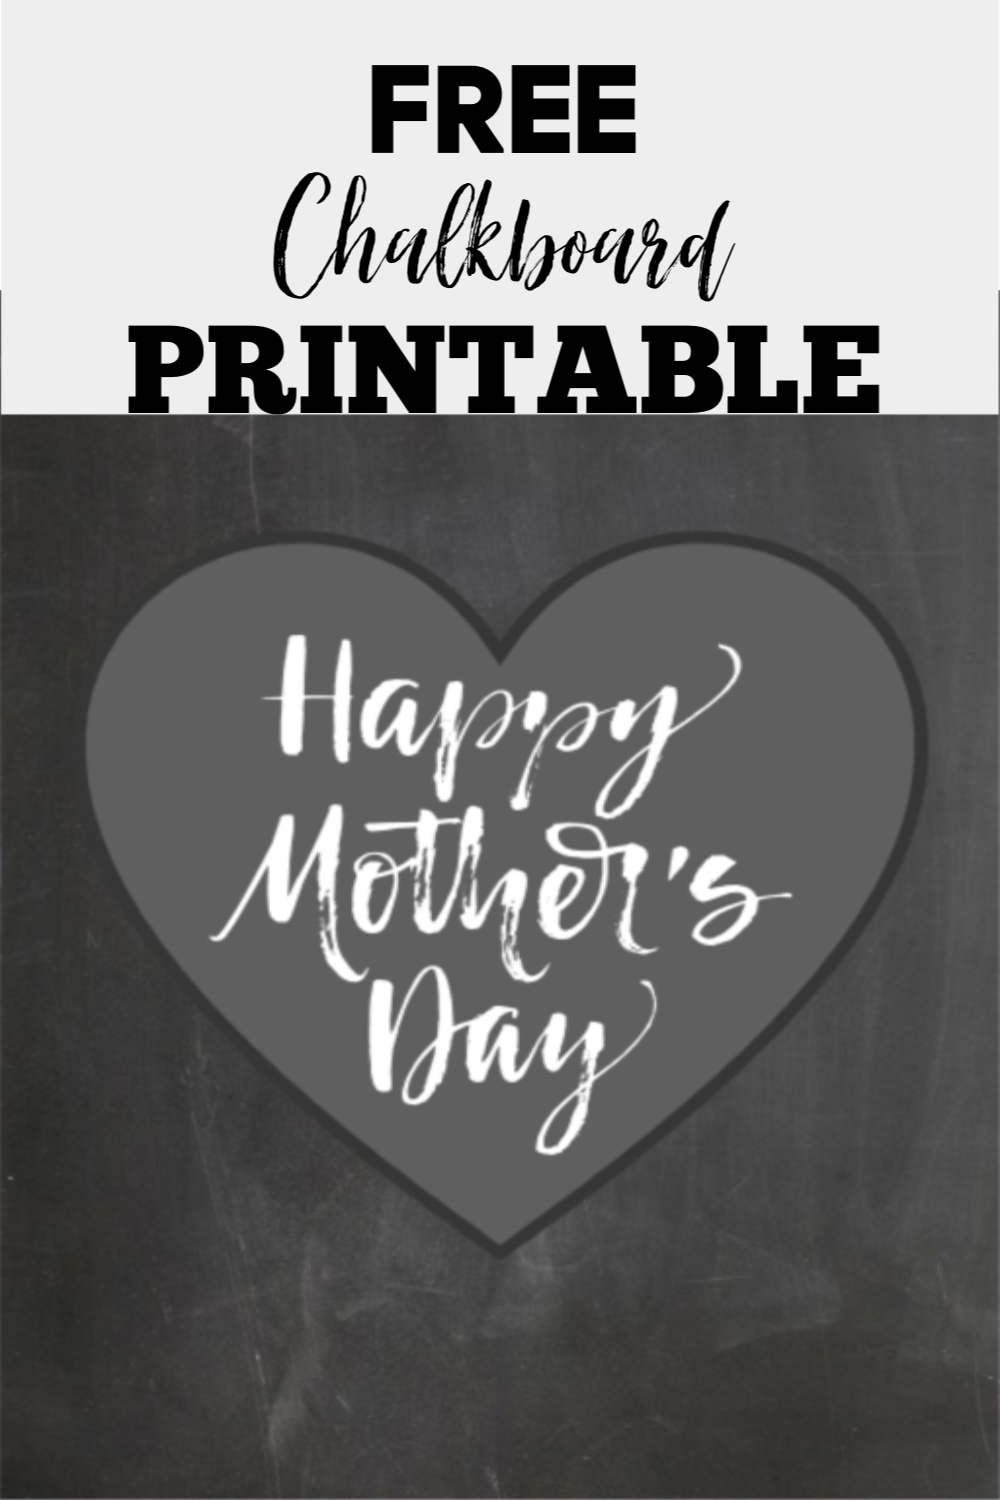 Hey guys, I'm back with another free printable! This Happy Mother's Day Free Printable is perfect for mom with one of my DIY Frames!